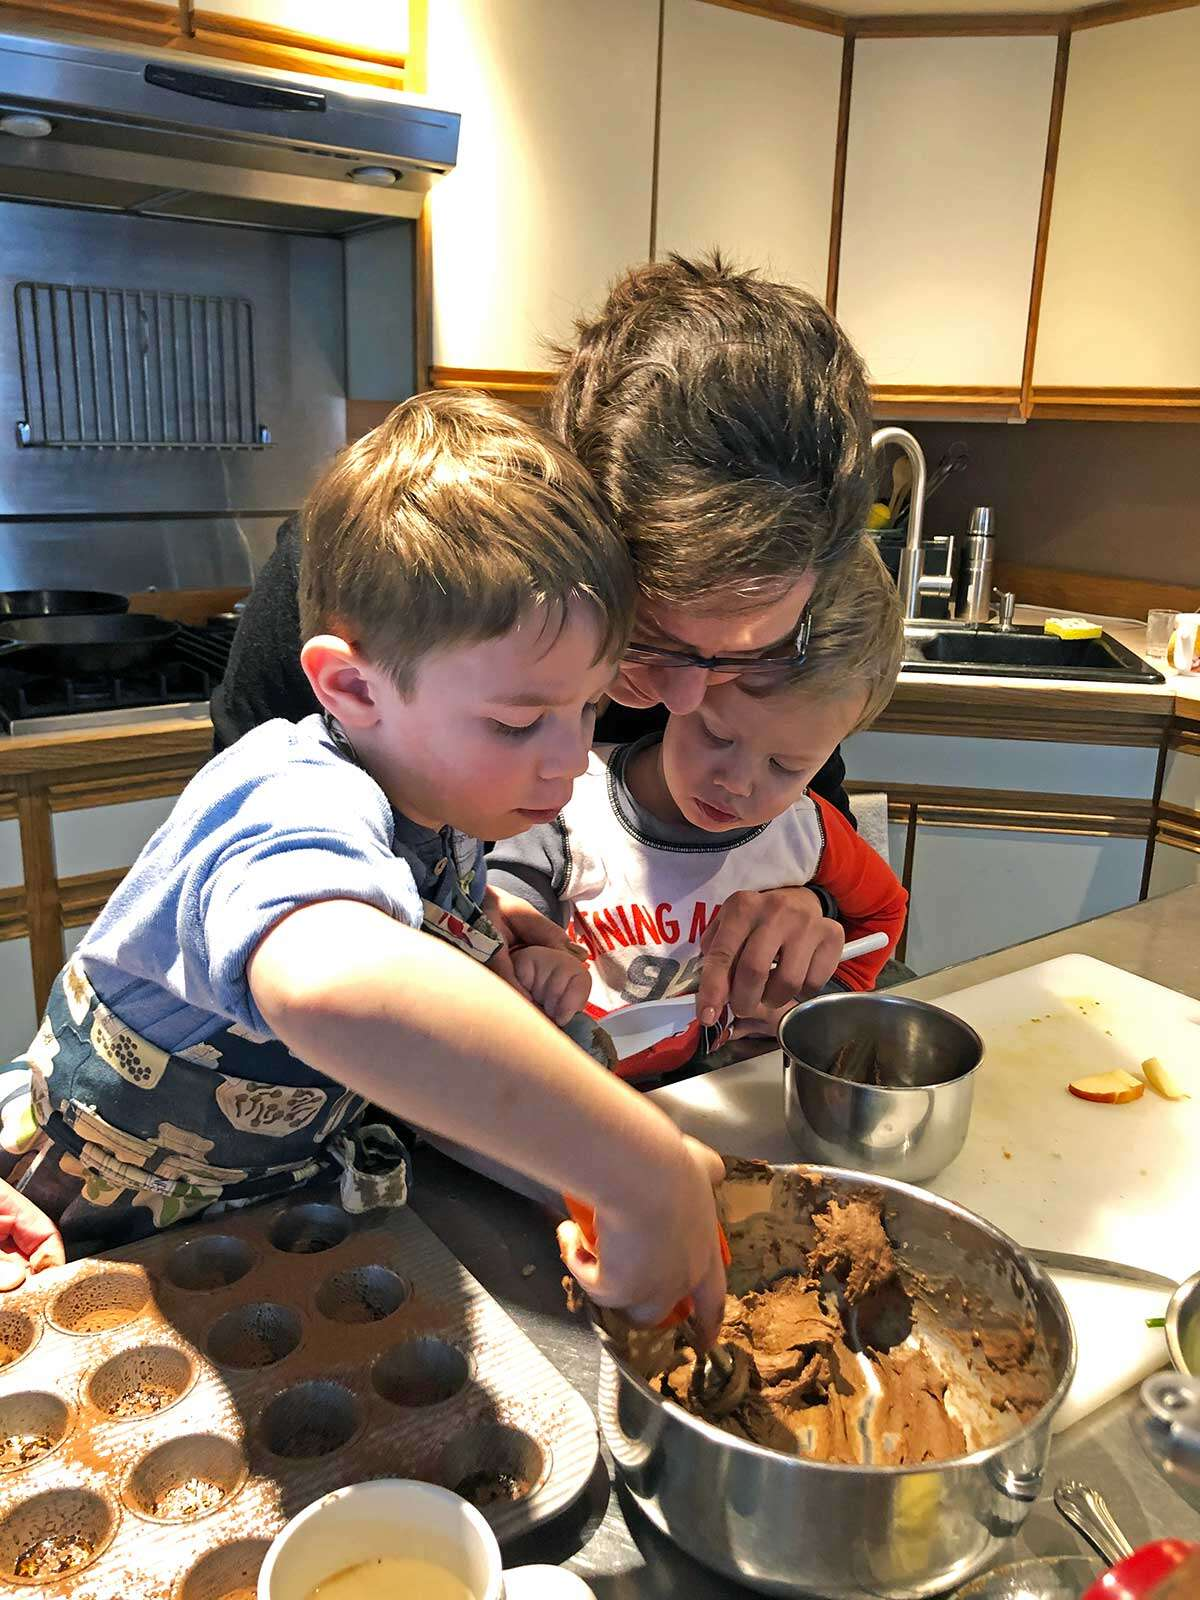 A mother and her two children scooping batter out of a bowl into a mini muffin pan.